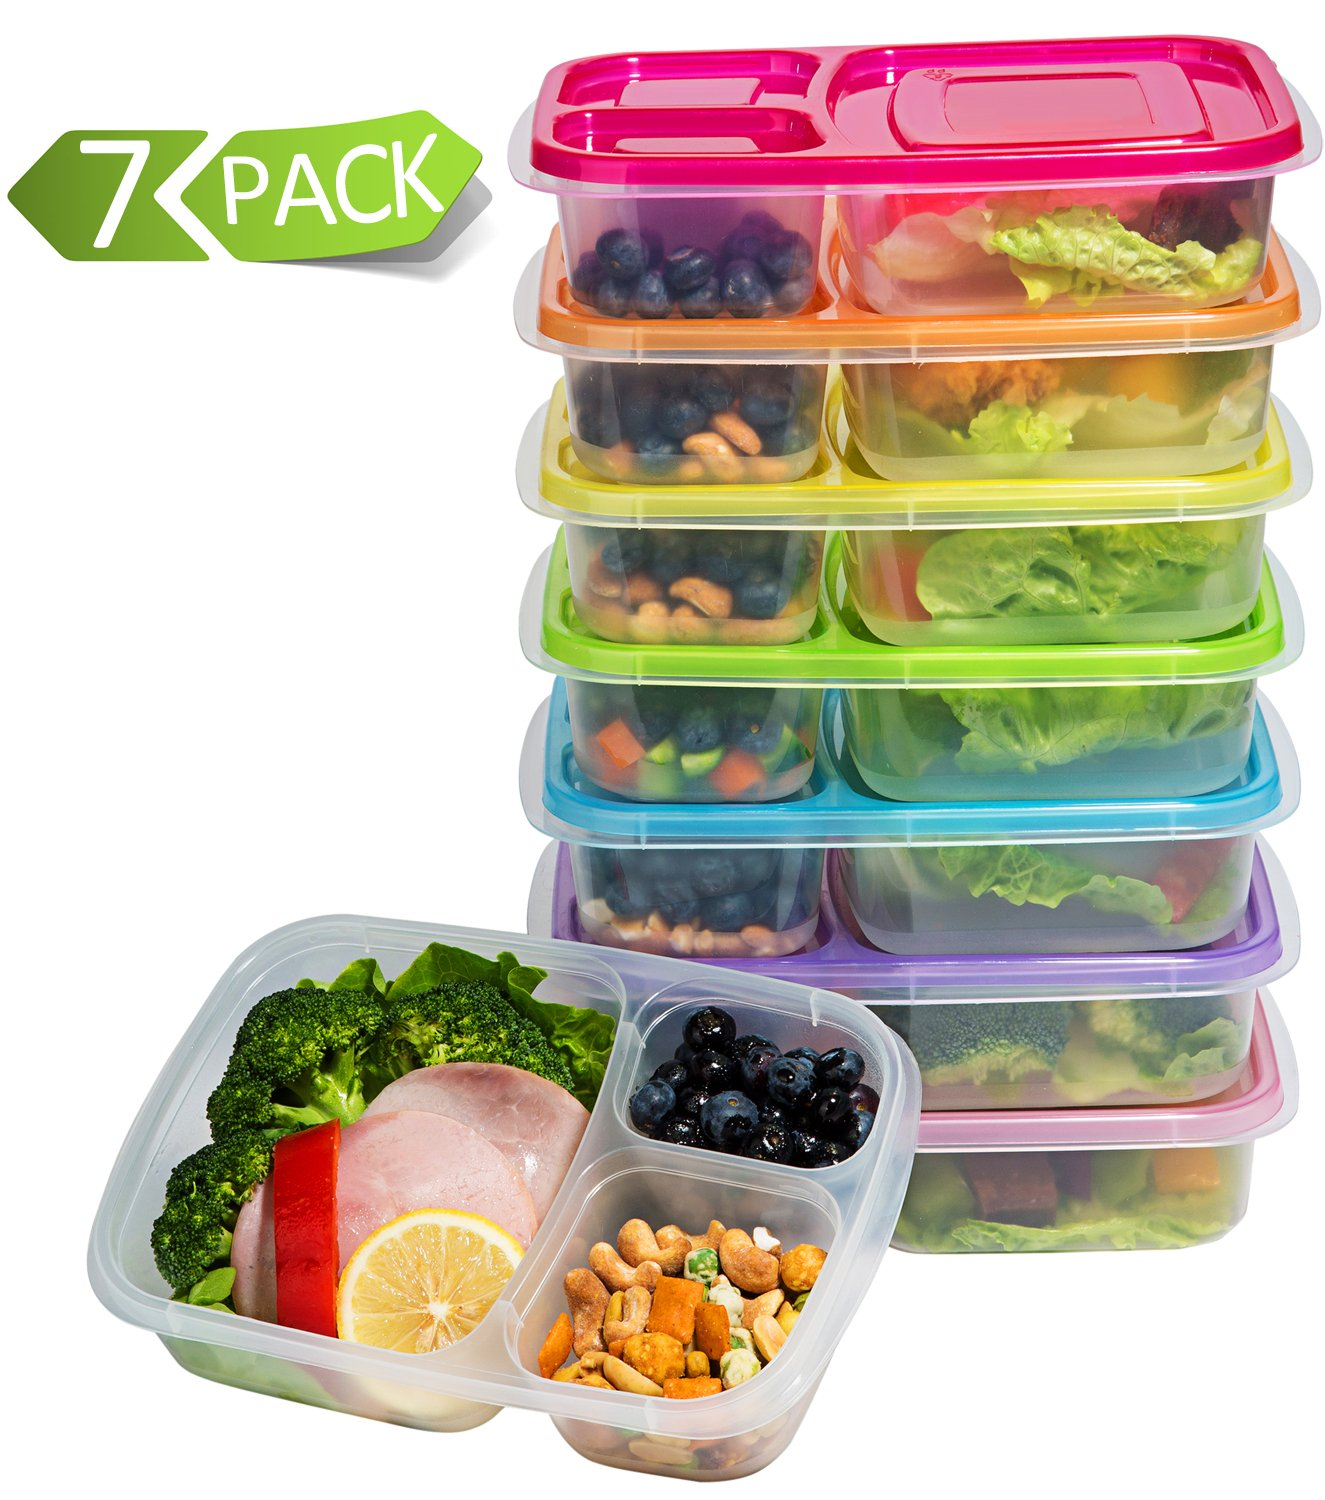 Mealcon Meal Prep Containers 3-Compartment Lunch Boxes